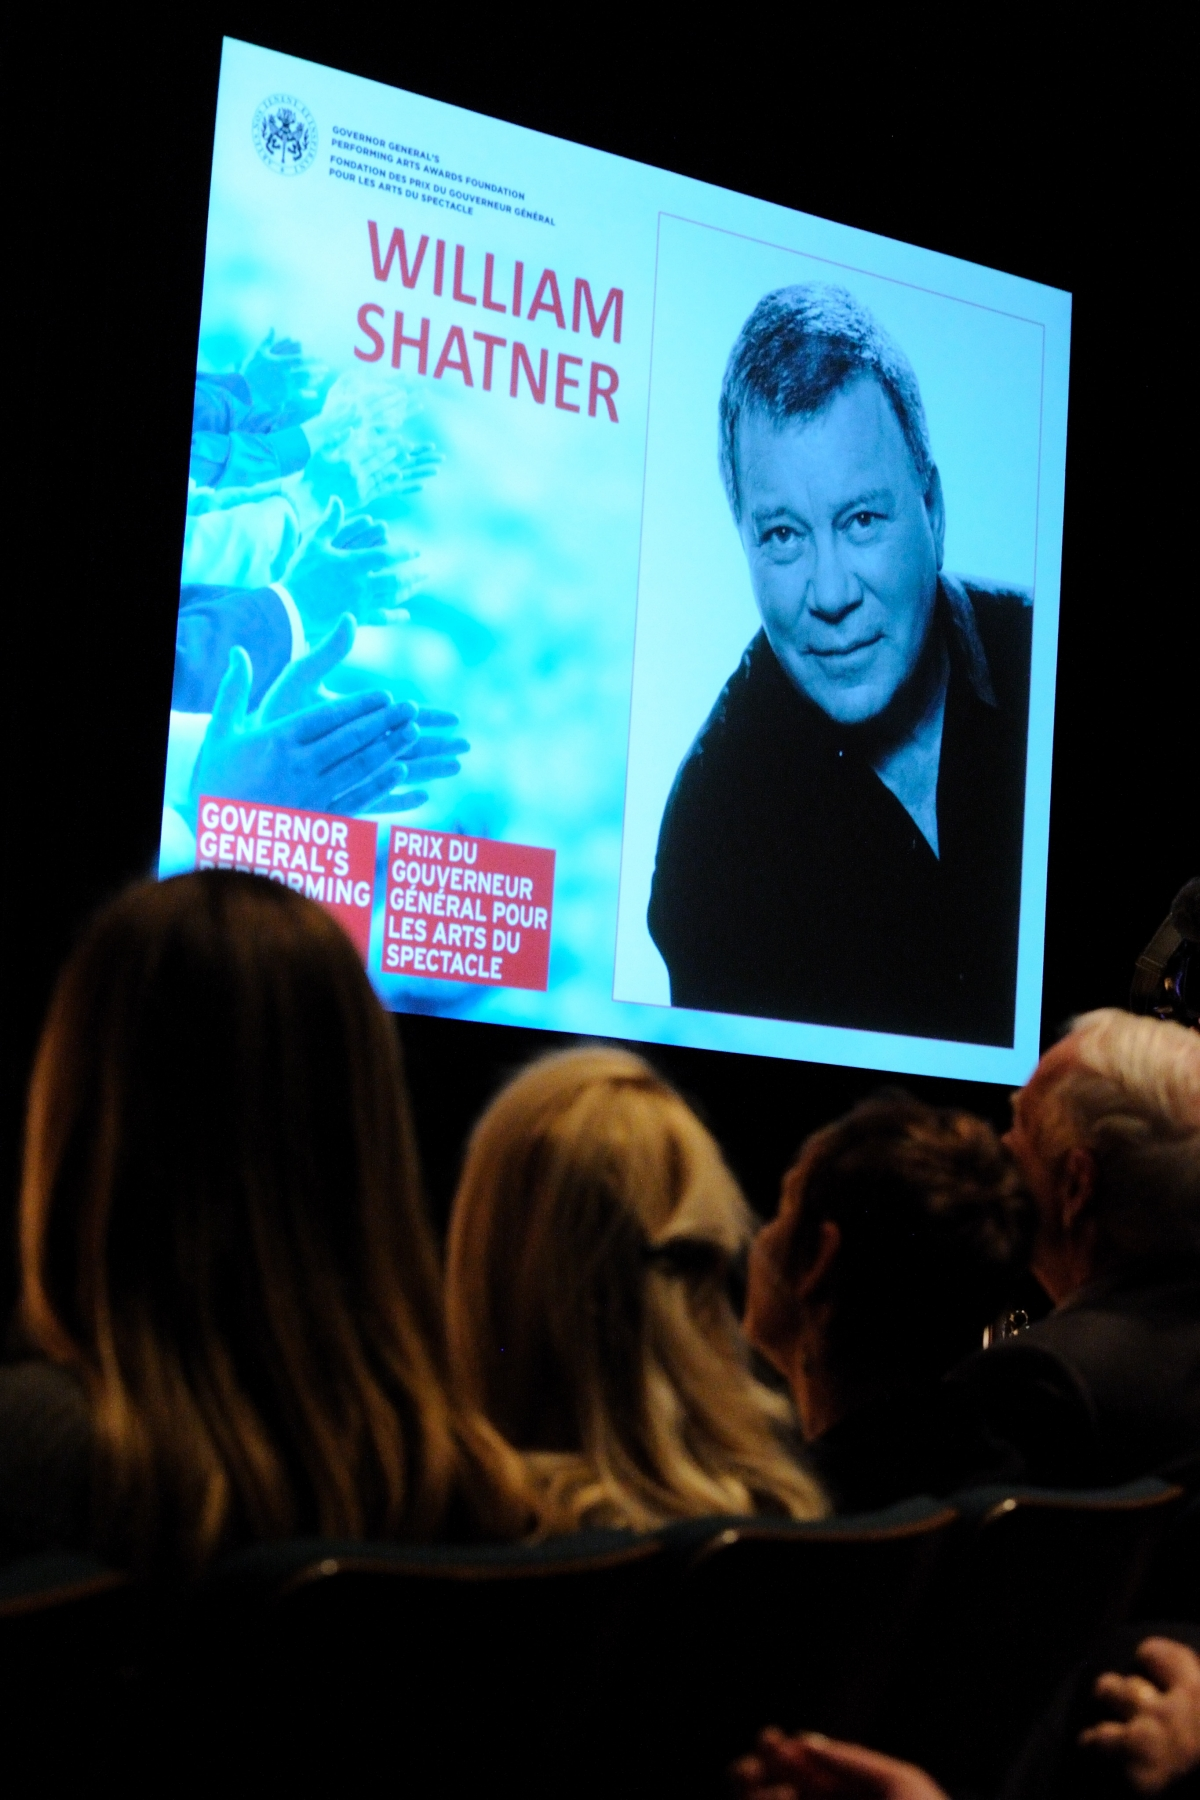 Mr. William Shatner was also named as laureate of the 2011 Governor General Performing Arts Awards for Lifetime Artistic Achievement. In a wide-ranging career spanning six decades, Mr. Shatner is an award-winning actor, accomplished director, best-selling author, and dedicated philanthropist and environmentalist whose compassion, creativity, and irrepressible sense of humour are integral to his life and work.